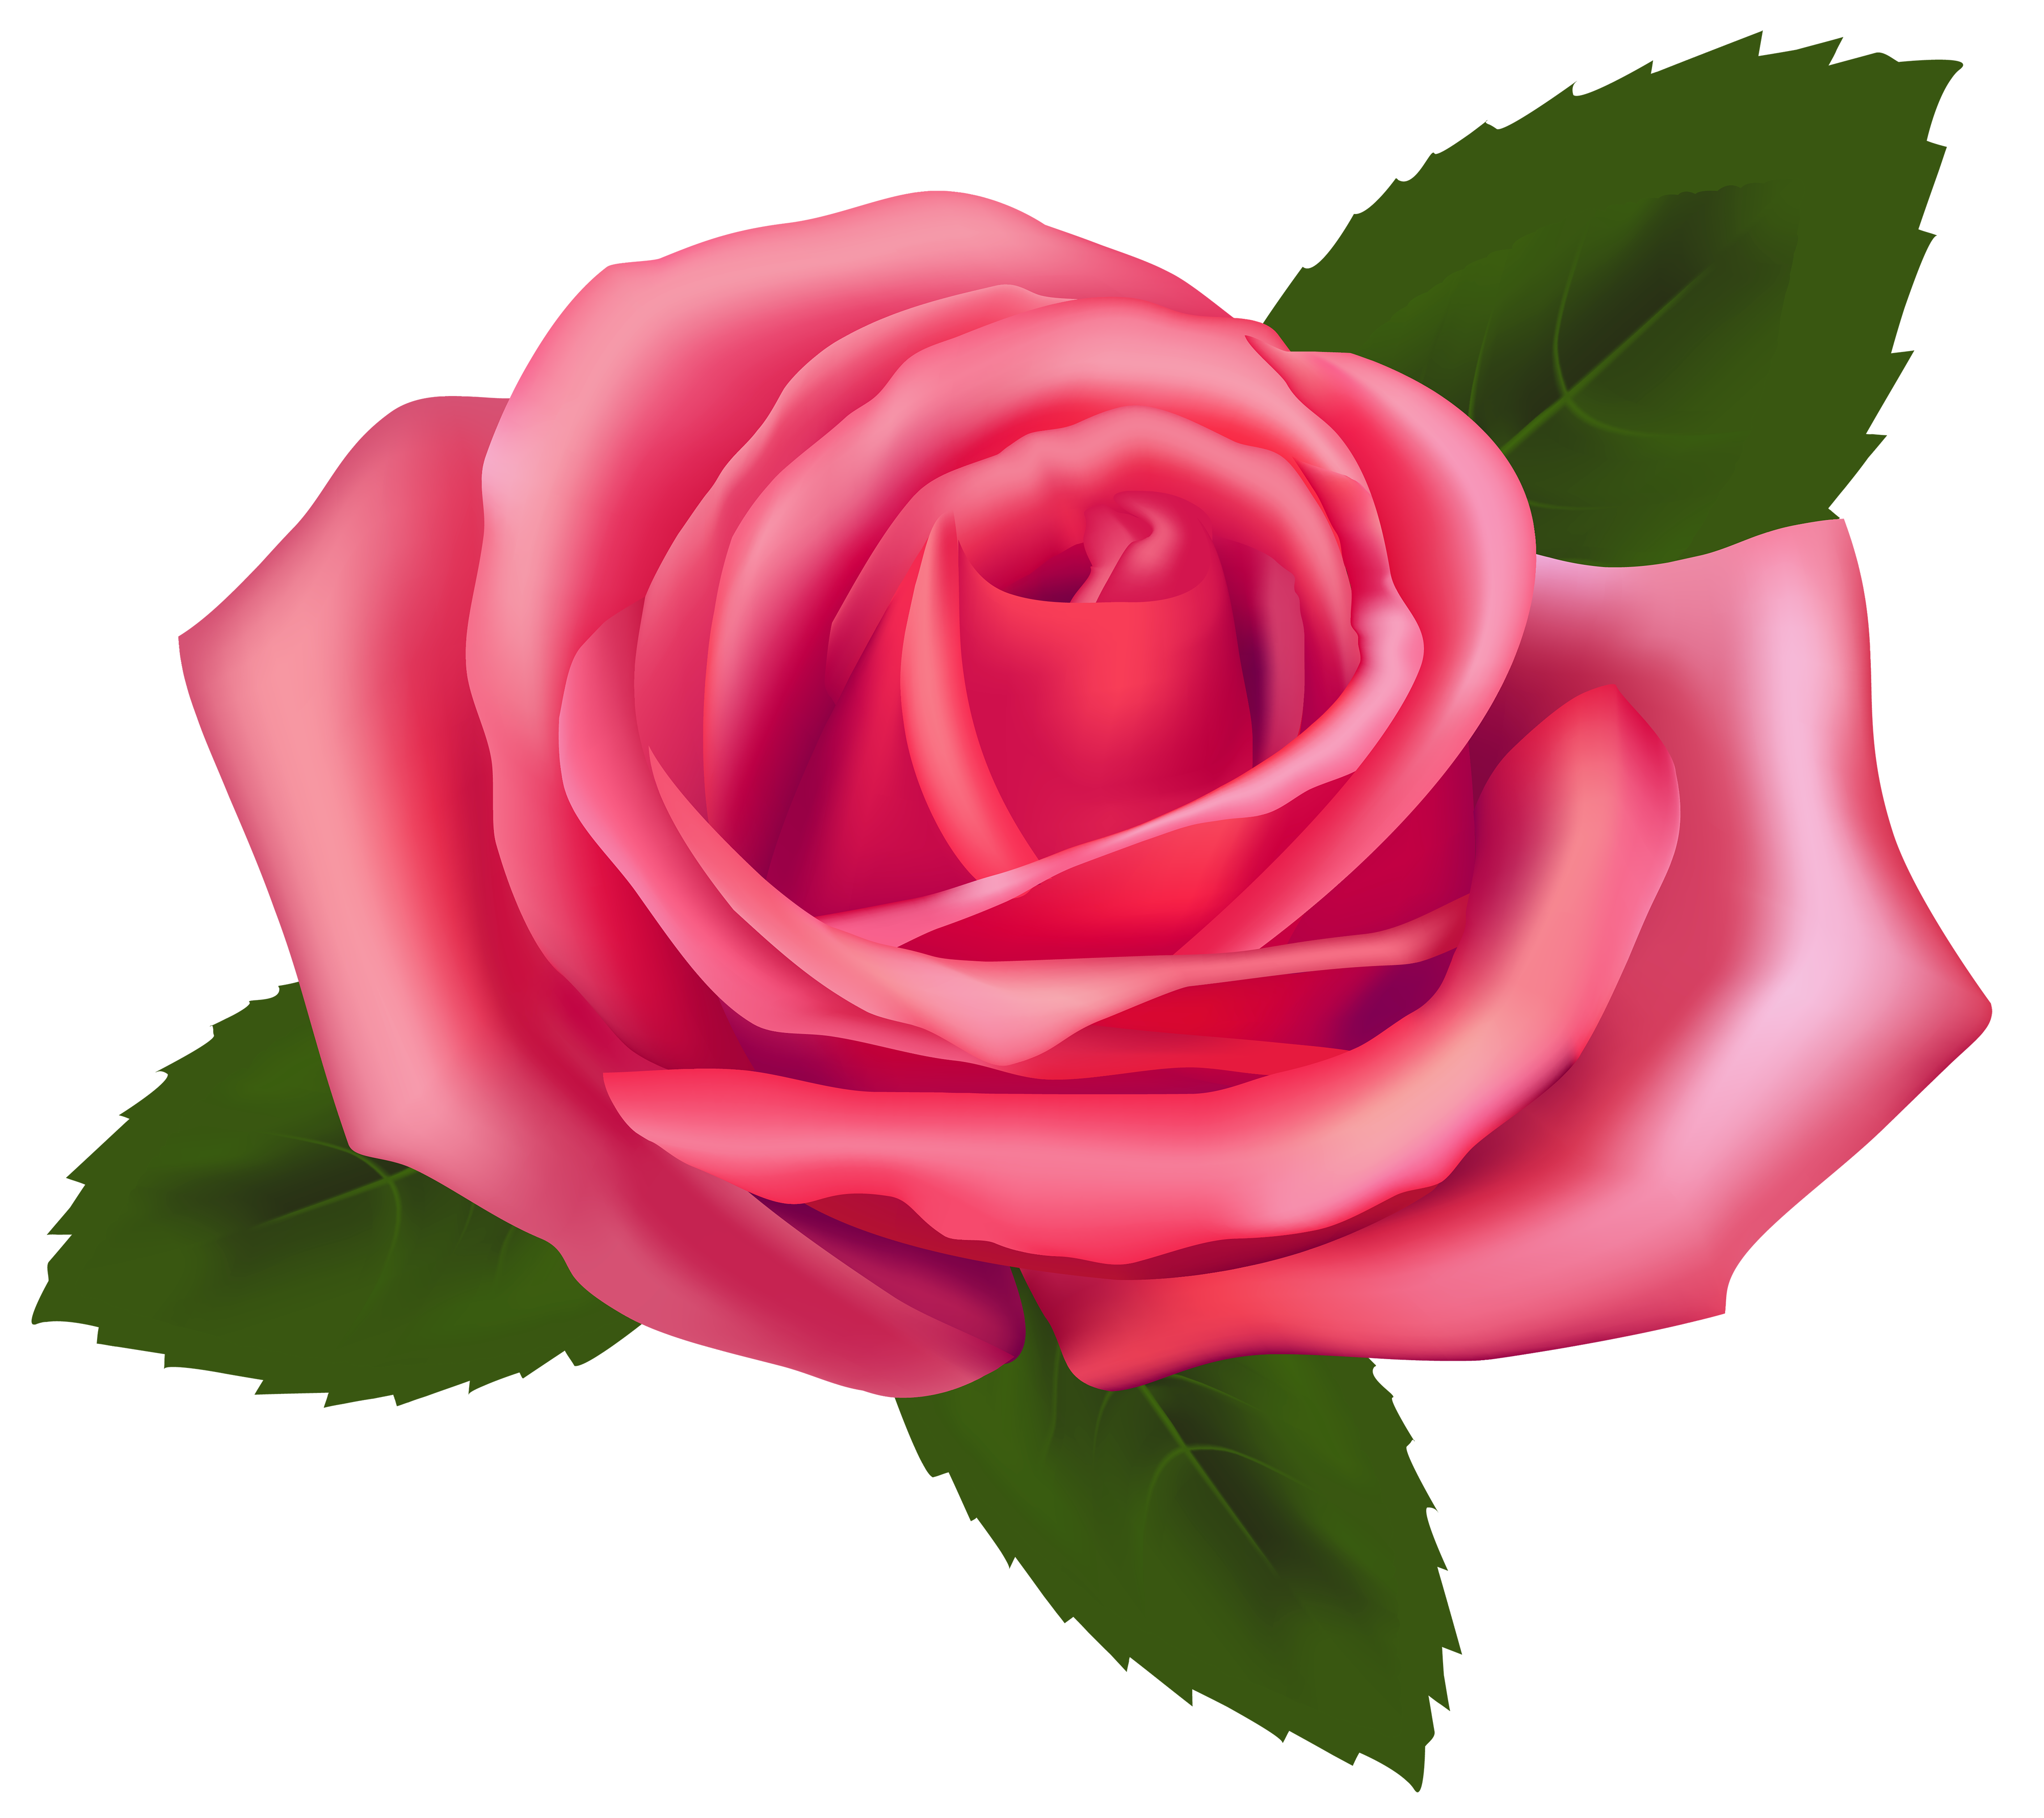 Pink rose flower clipart jpg black and white stock Beautiful Pink Rose PNG Clipart - Best WEB Clipart jpg black and white stock